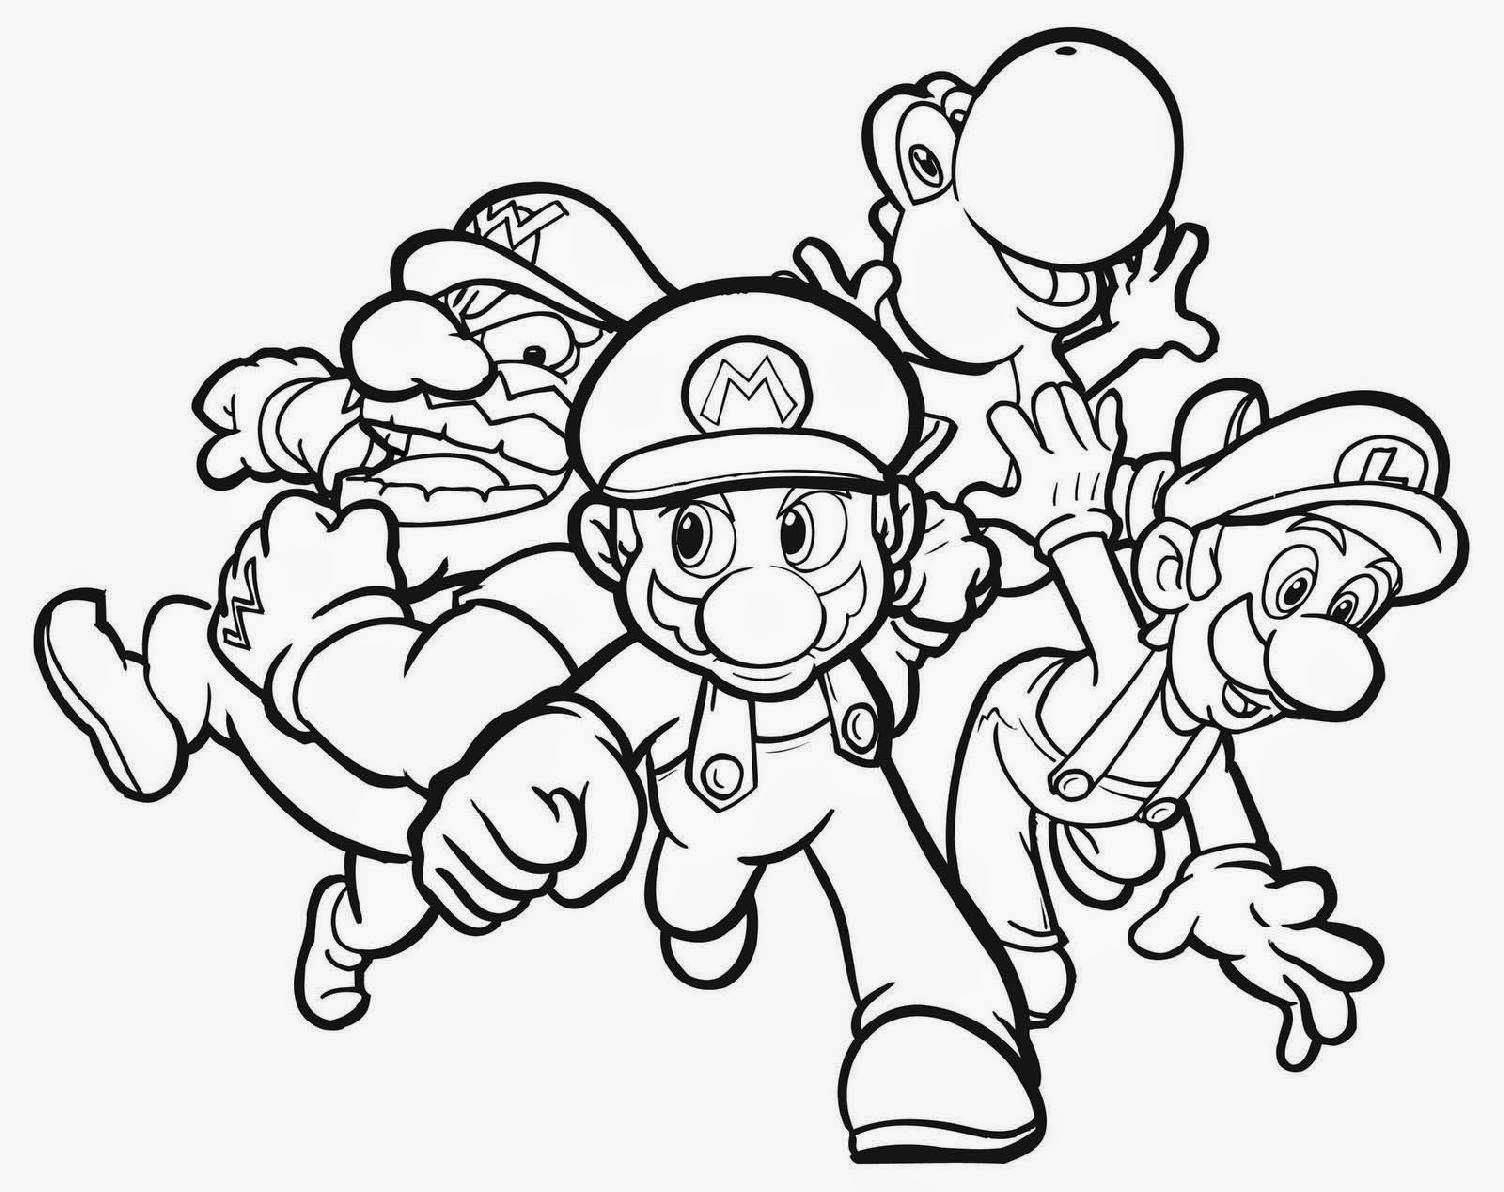 Free Printable Mario Coloring Pages For Kids | 1192x1504